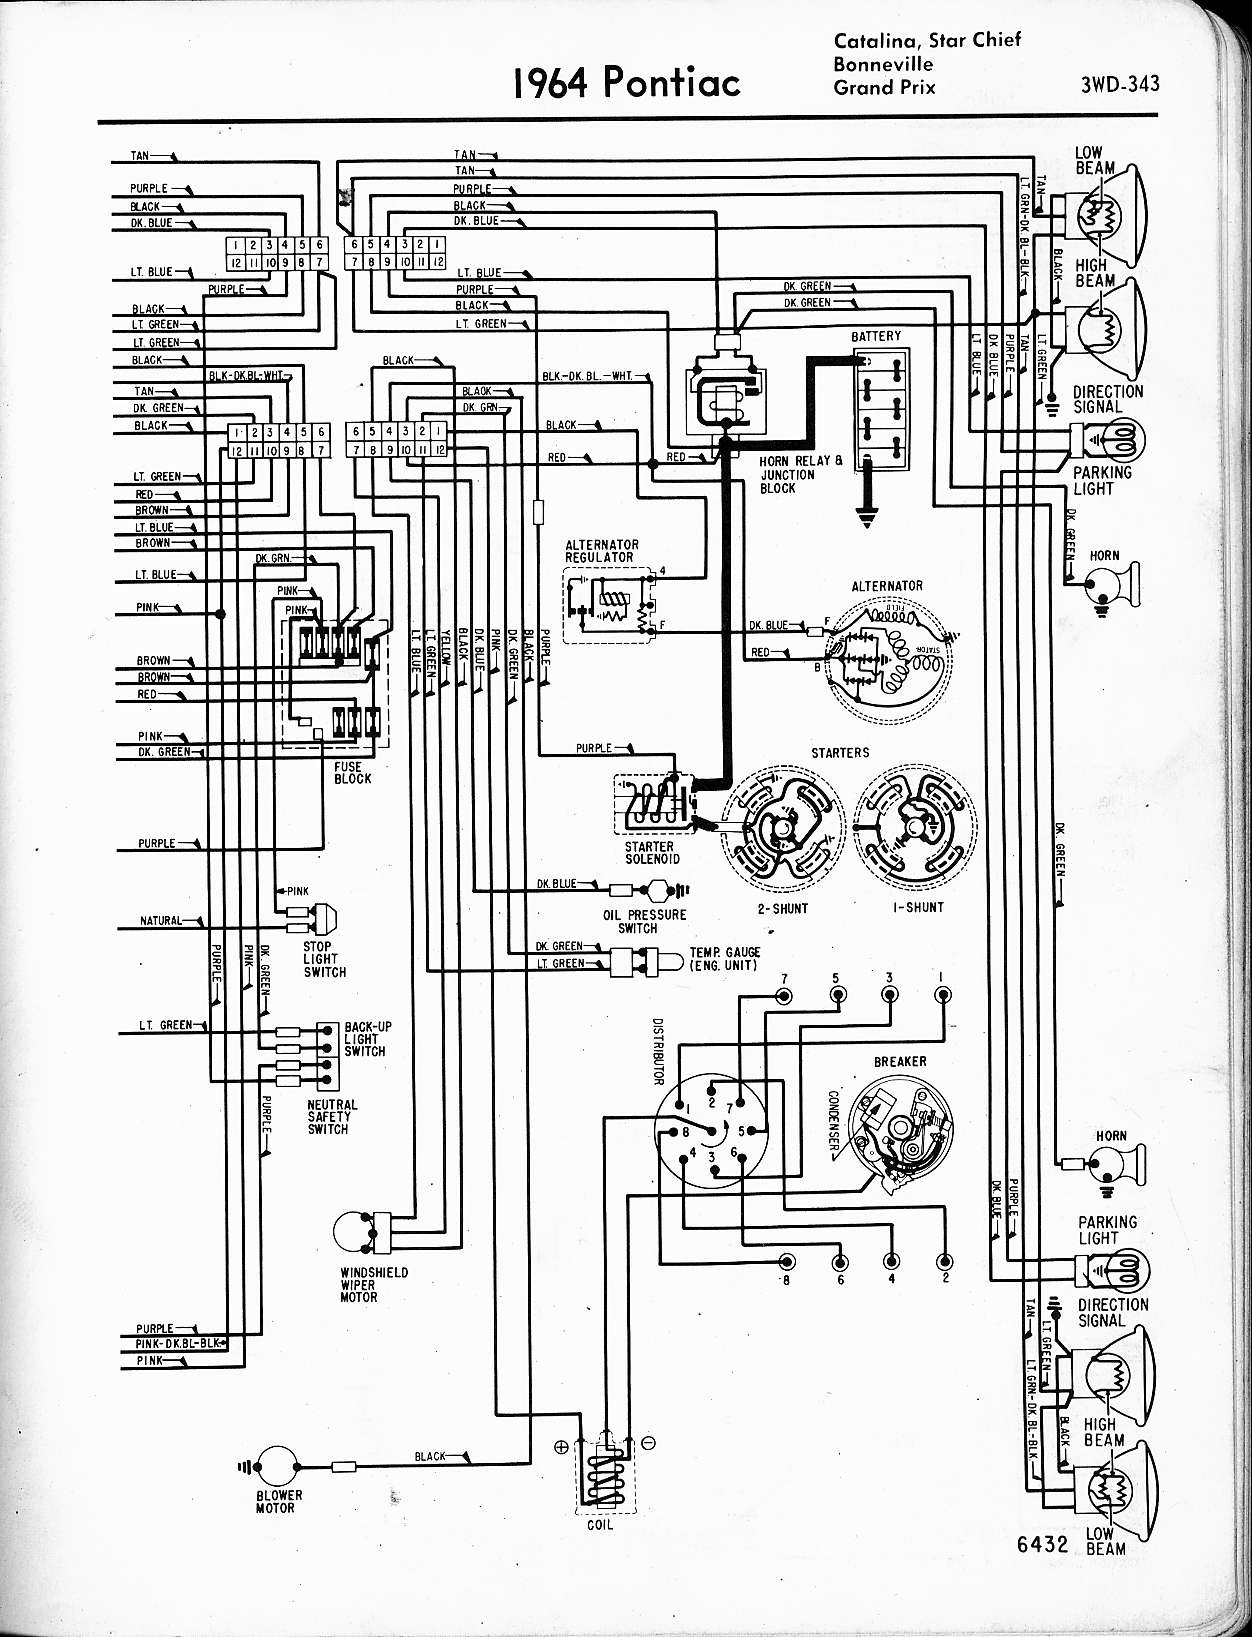 1965 Pontiac Wiring Diagram Detailed Schematics Rh Keyplusrubber Com 2006 G6 Radio Harness Bonneville